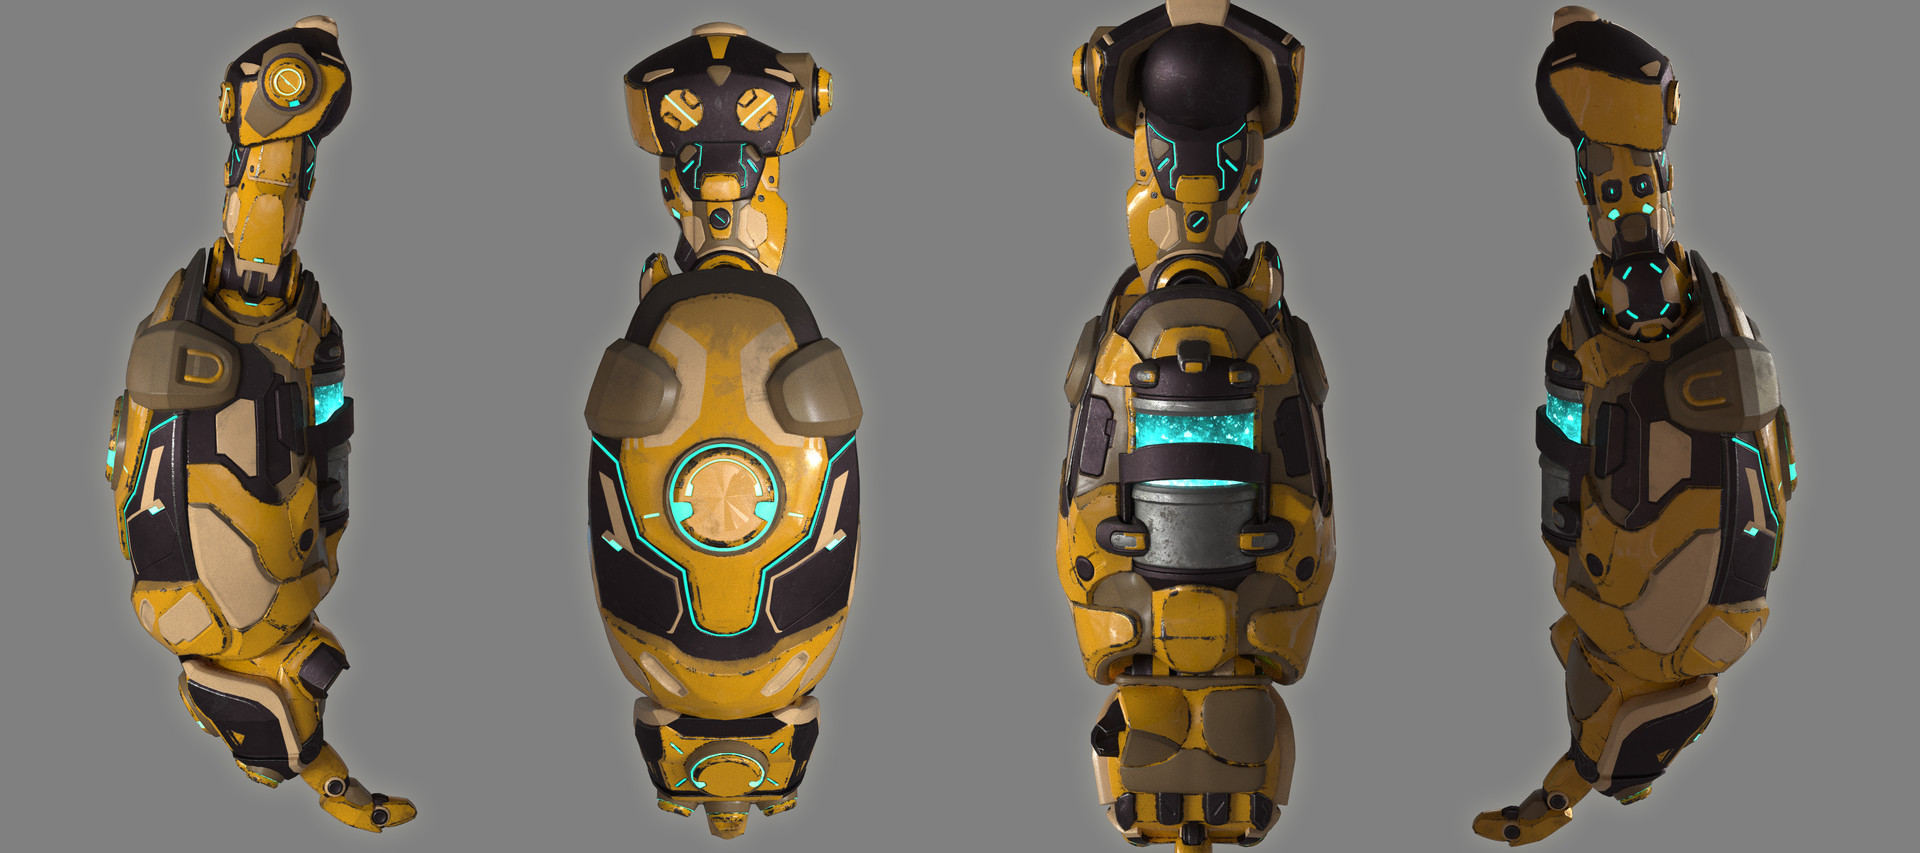 WIP render of arm re-design.